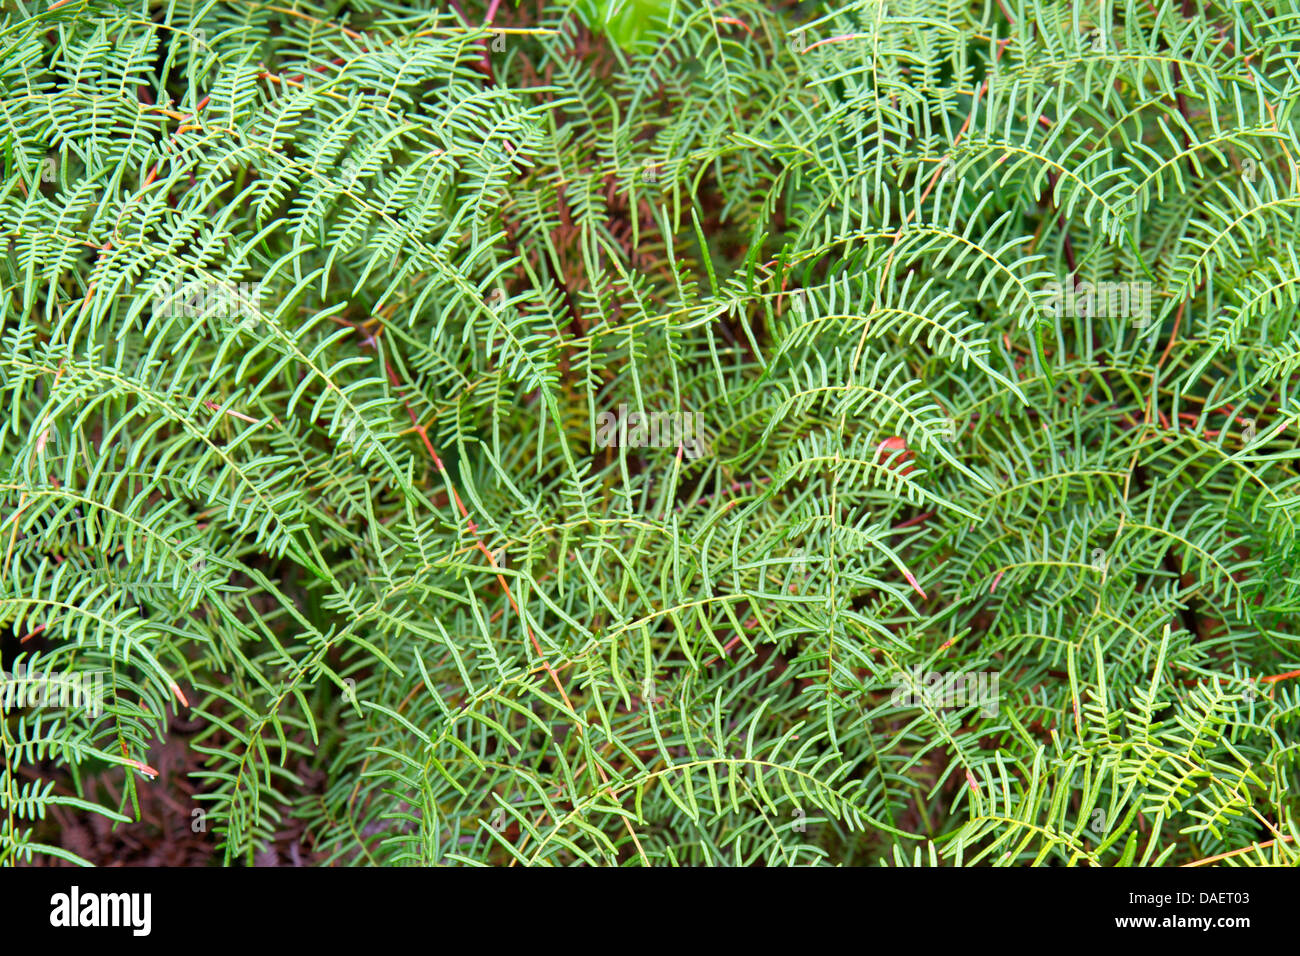 Miami Florida City Everglades Florida National Park Main Park Road Pteridium aquilinum caudatum lacy bracken fern - Stock Image